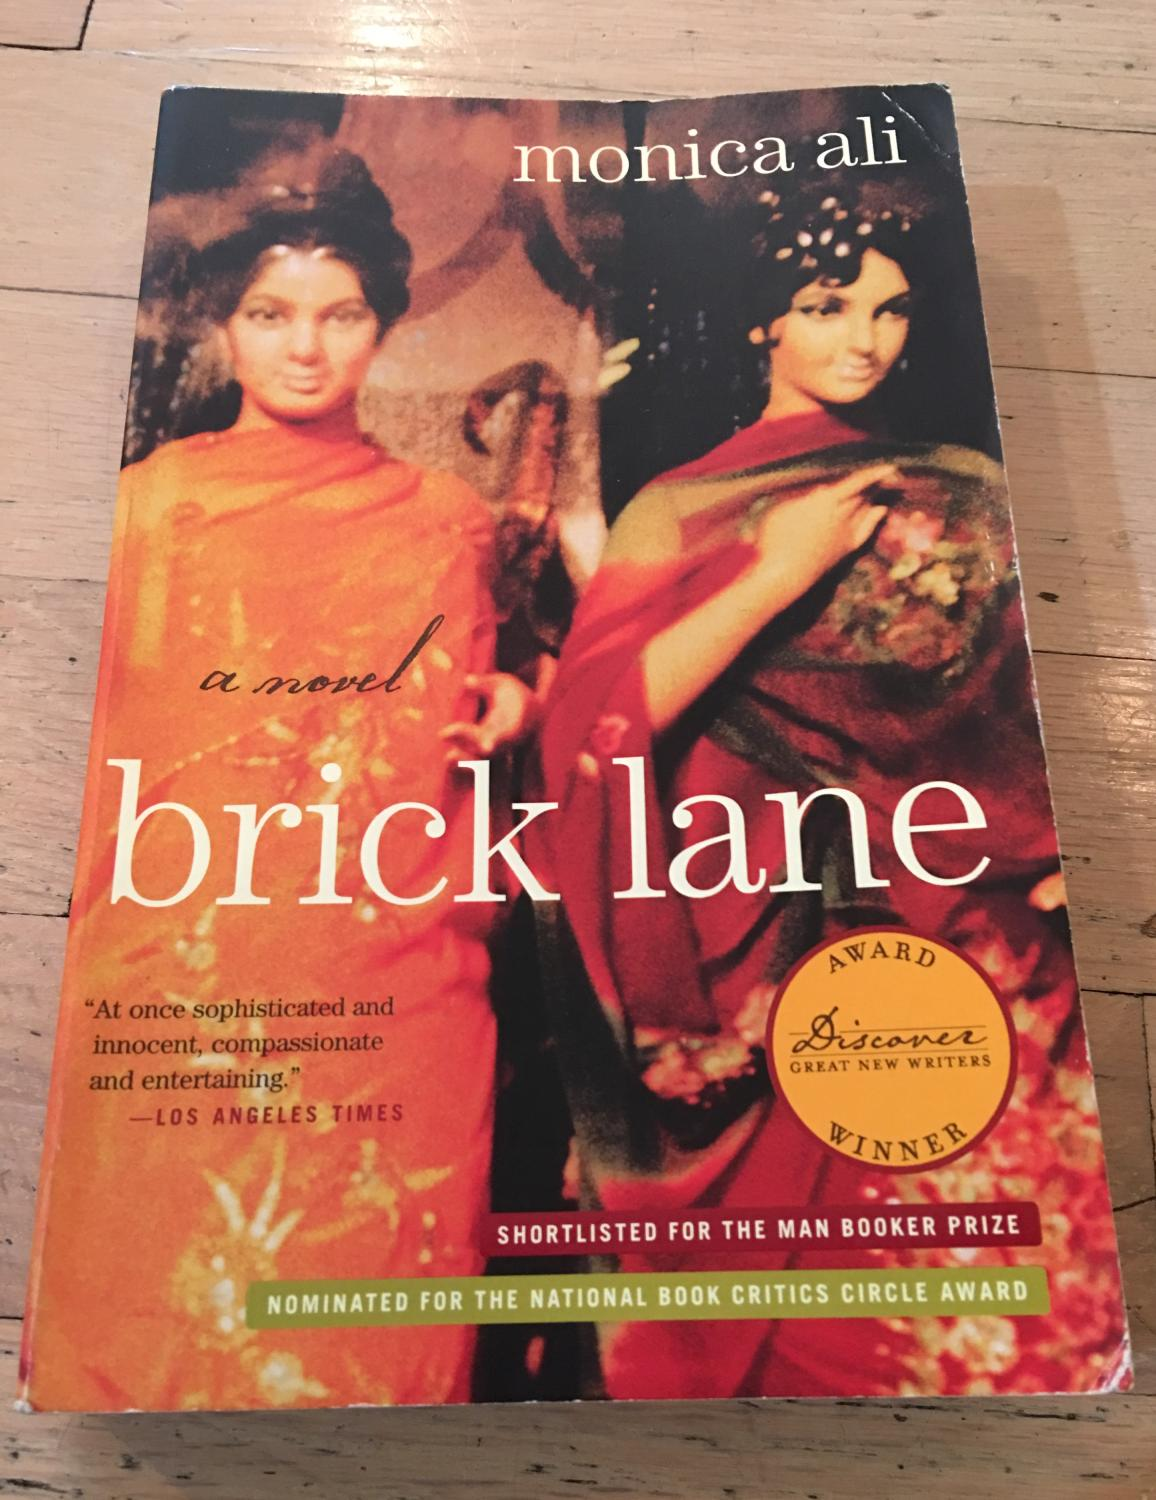 monica ali brick lane Monica ali is a british writer of bangladeshi origin she is the author of brick lane, her debut novel, which was shortlisted for the man booker prize fo.